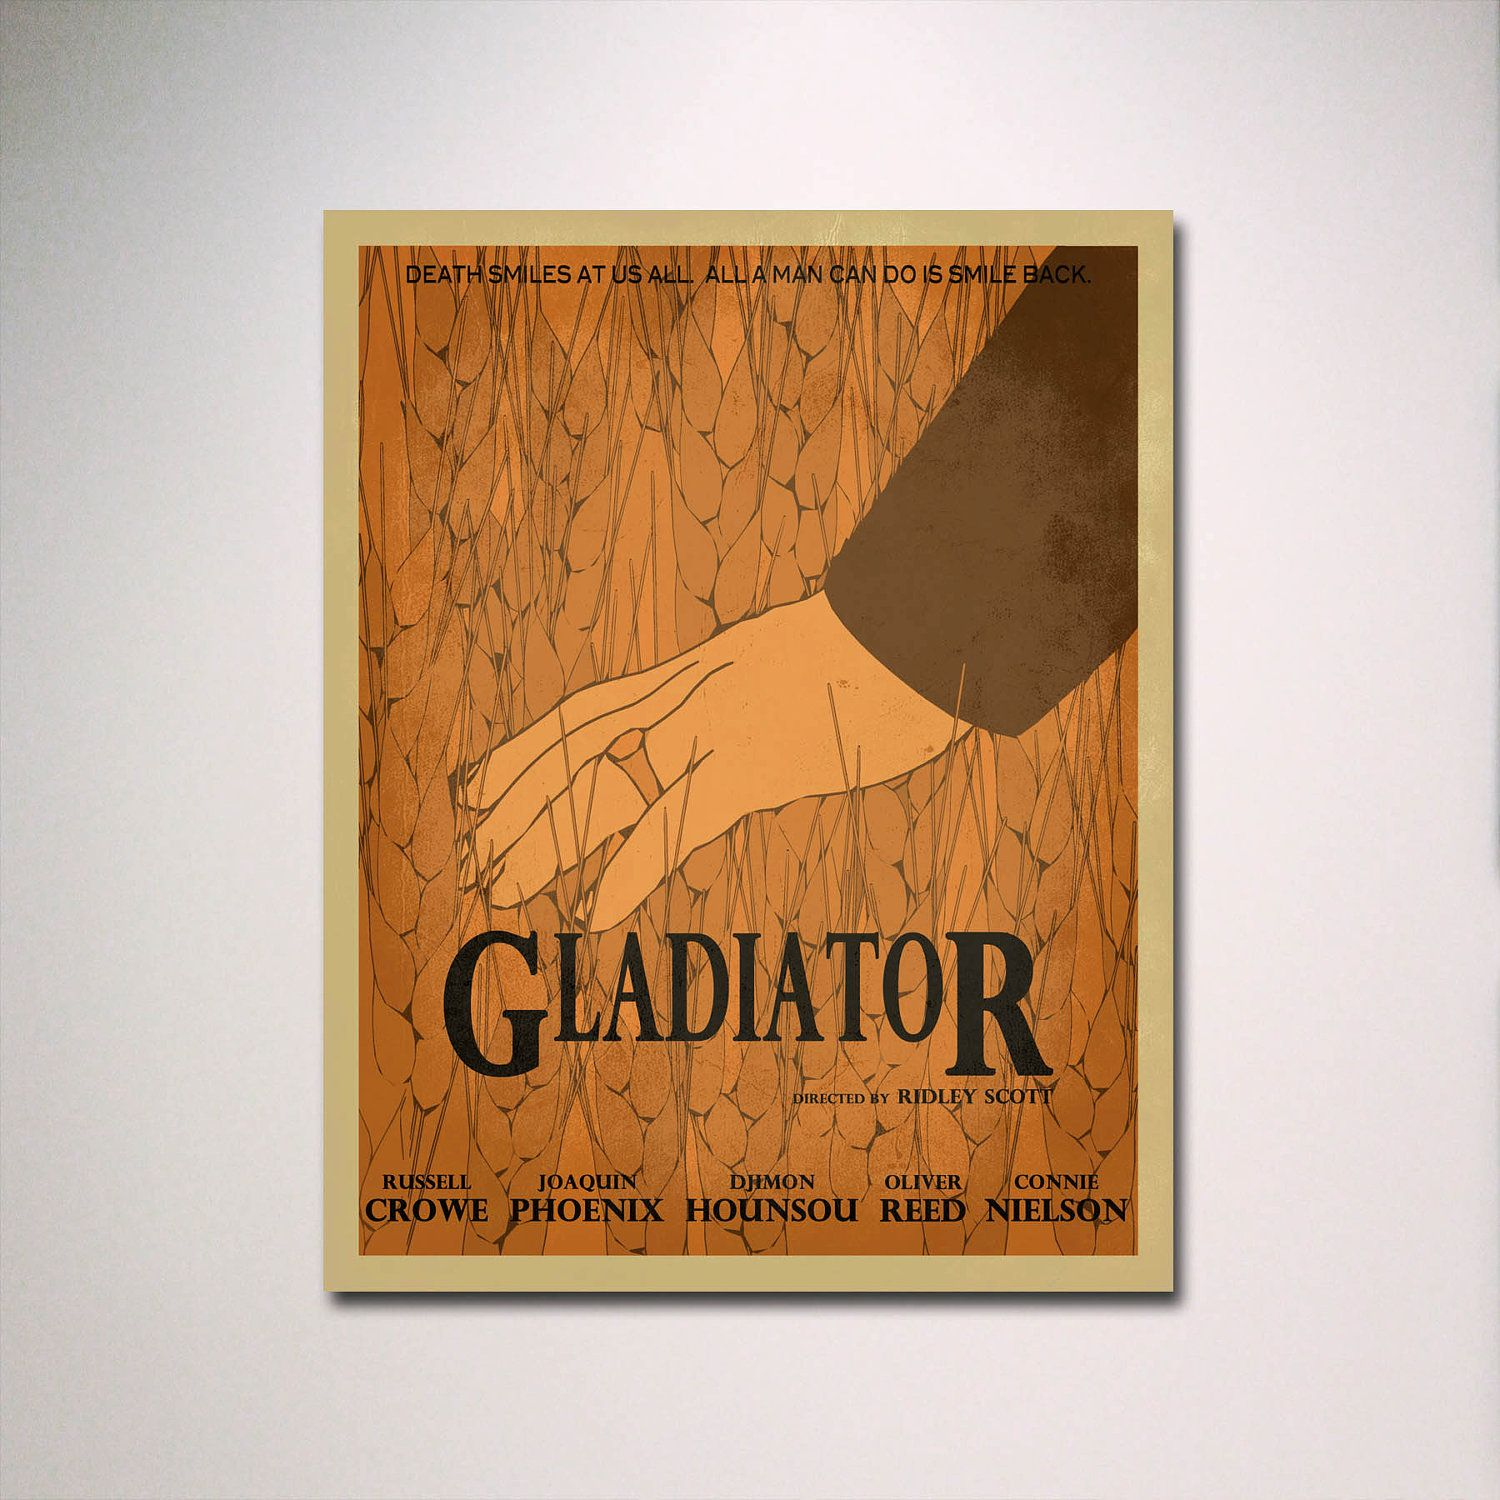 Movie Room Art is part of Minimalist movie poster, Movie posters minimalist, Movie posters, Theatre poster, Movie room, Gladiator - What we do in life echoes in eternity    My name is Gladiator   This is an original minimalist movie poster inspired by the film, Gladiator   This listing is for a poster printed on highquality photo paper  We use only archival quality paper and inks, made to last well over a century! Select your size and price option before adding to cart  Please contact us prior to purchasing if you need your order by a certain date  We can make custom posters on request! Any size! Any color! Even color matching! Let me know if you would like us to create a custom listing   Thanks for shopping!